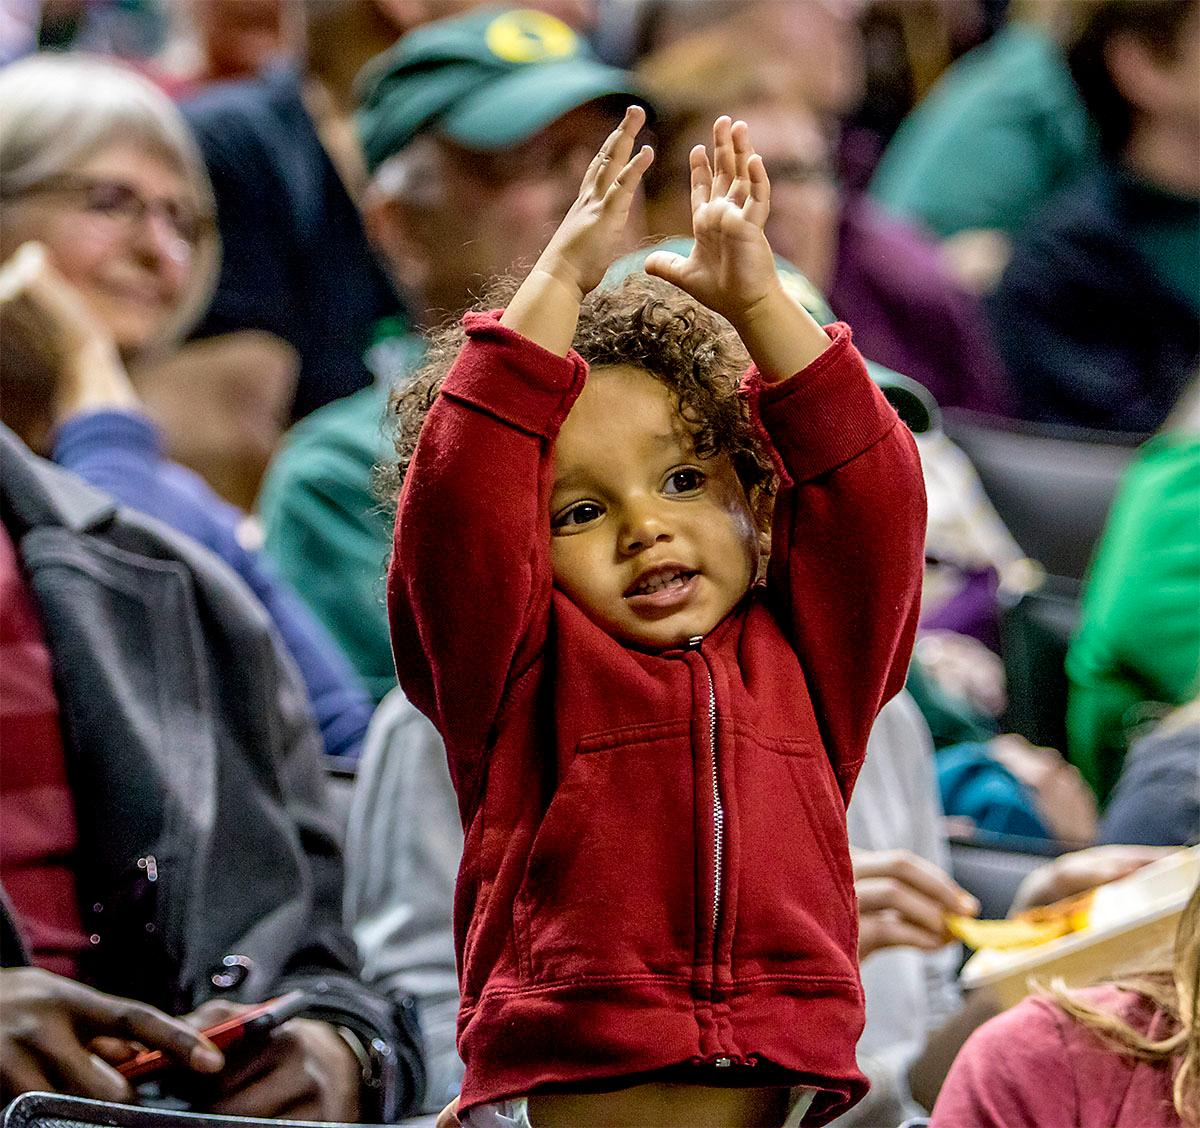 A young Stanford fan cheers on his team. The Stanford Cardinal defeated the Oregon Ducks 78-65 on Sunday afternoon at Matthew Knight Arena. Stanford is now 10-2 in conference play and with this loss the Ducks drop to 10-2. Leading the Stanford Cardinal was Brittany McPhee with 33 points, Alanna Smith with 14 points, and Kiana Williams with 14 points. For the Ducks Sabrina Ionescu led with 22 points, Ruthy Hebard added 16 points, and Satou Sabally put in 14 points. Photo by August Frank, Oregon News Lab